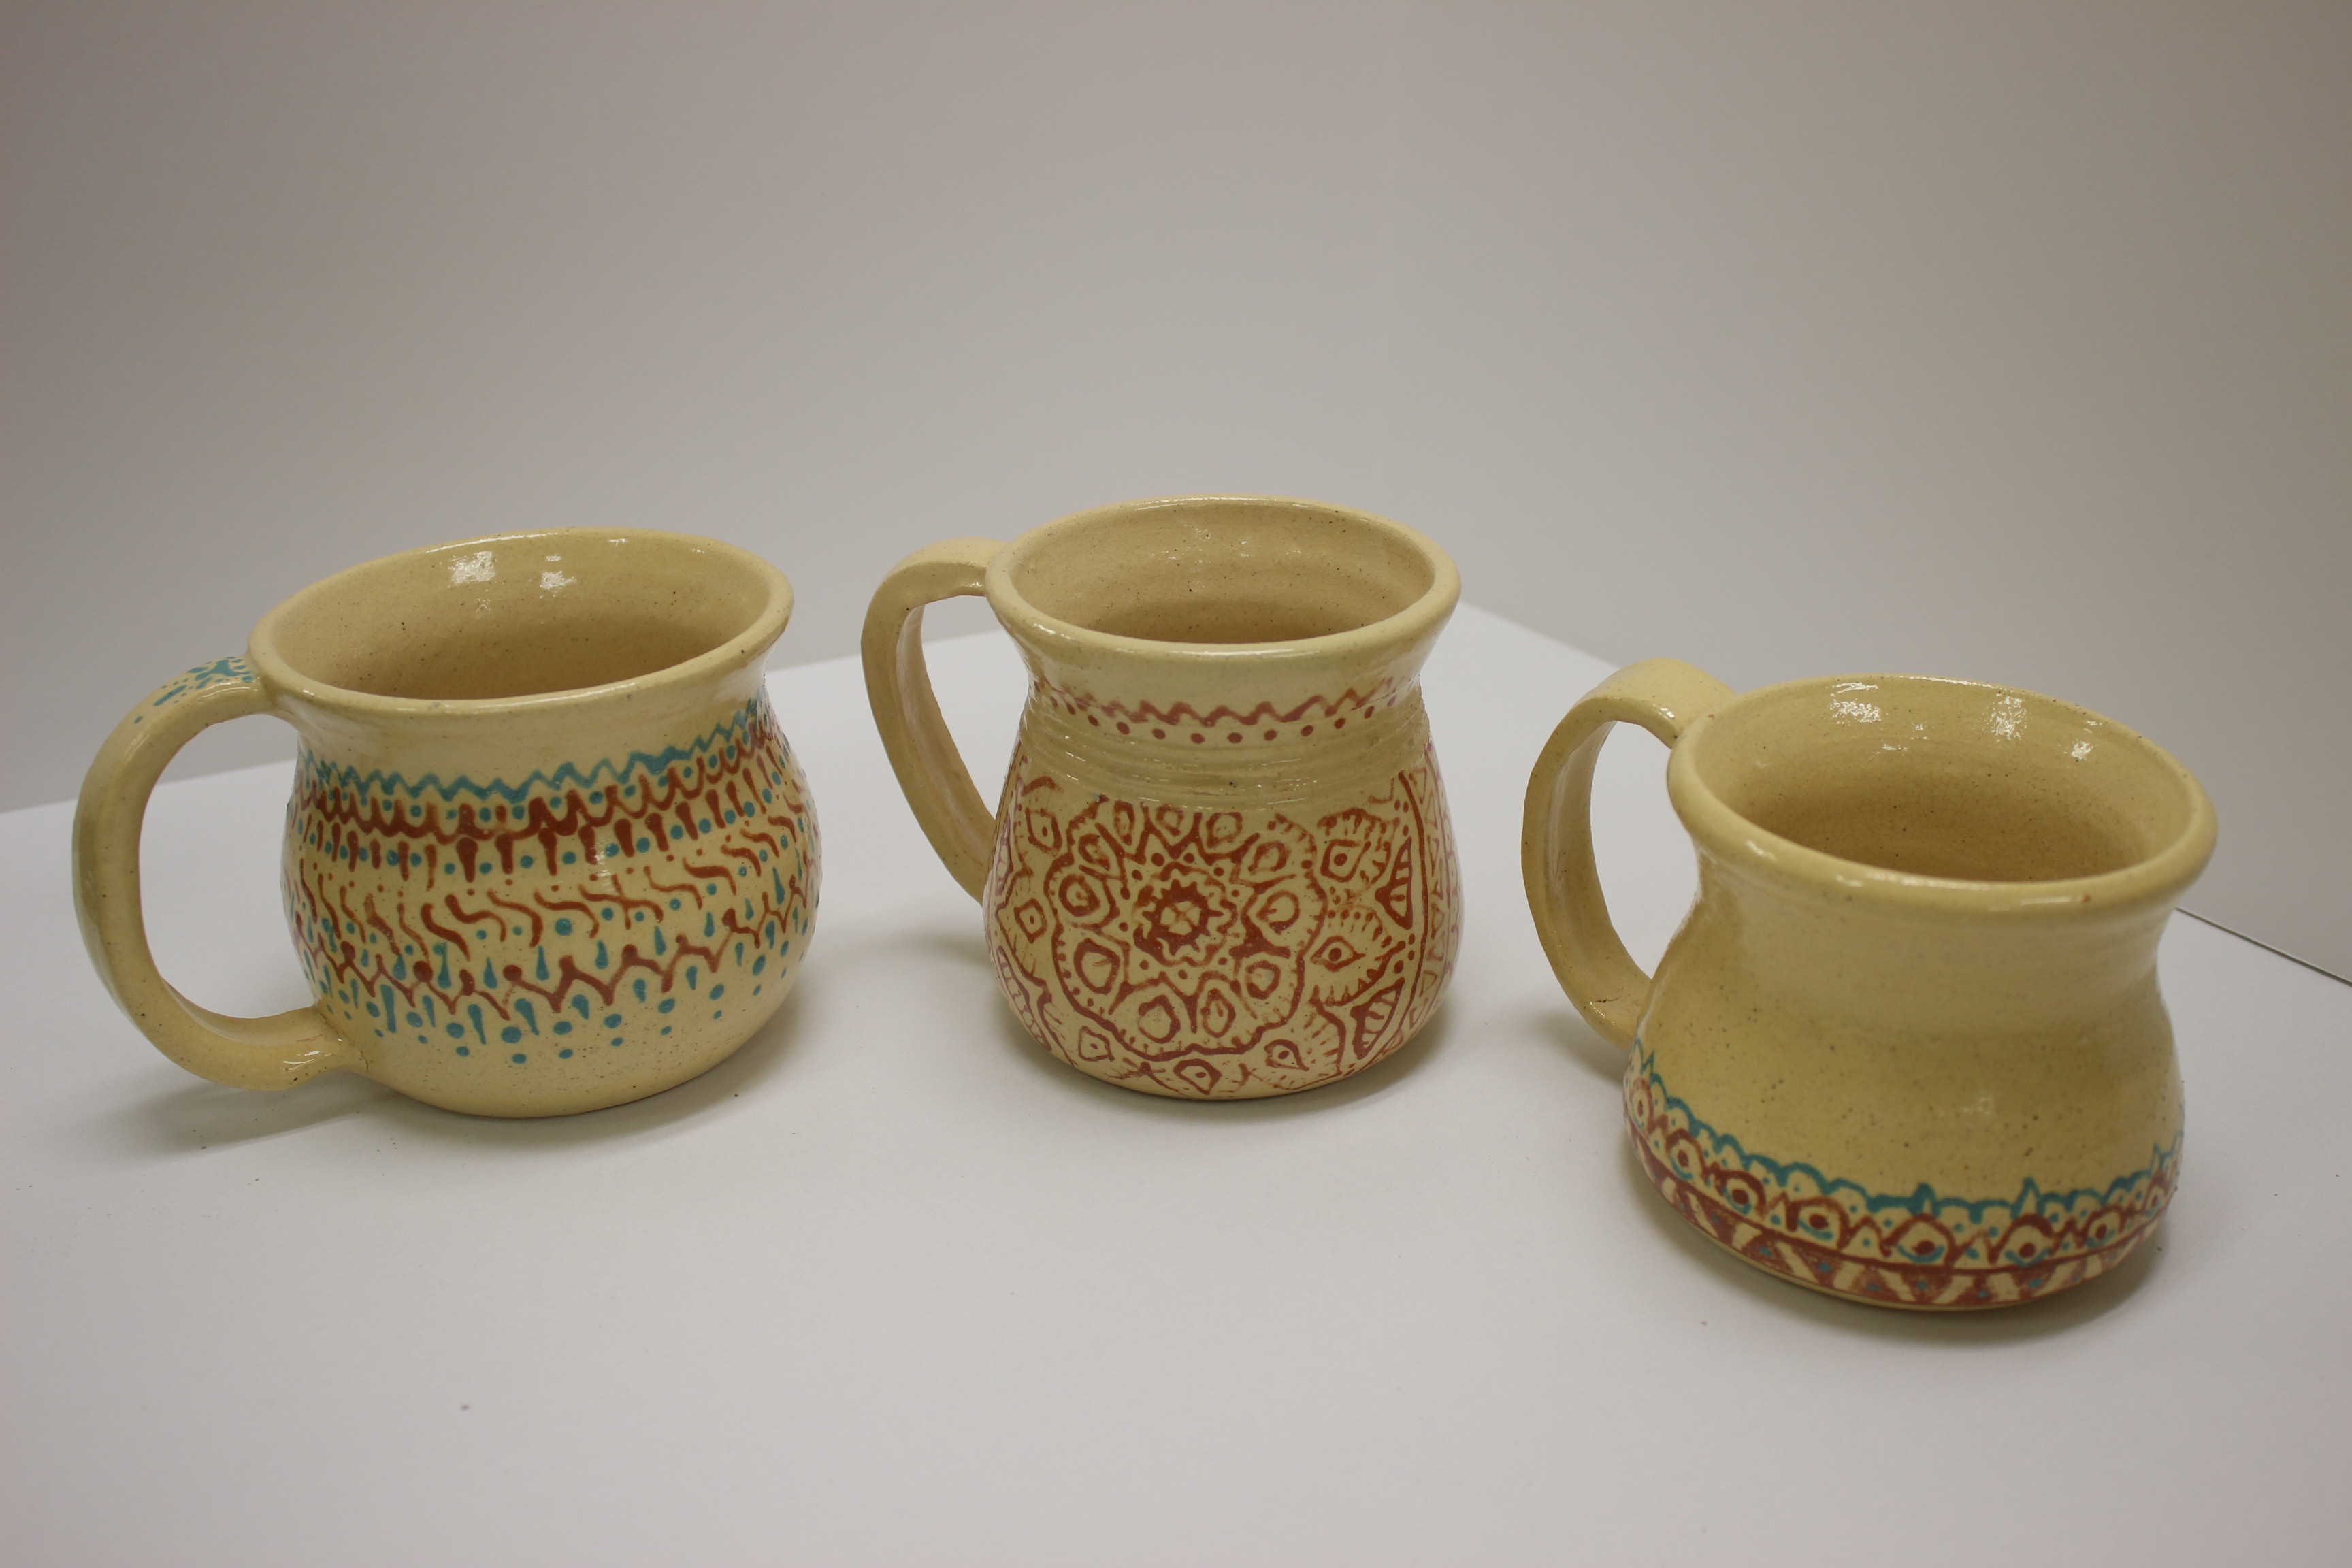 Set of 3 Tea Mugs